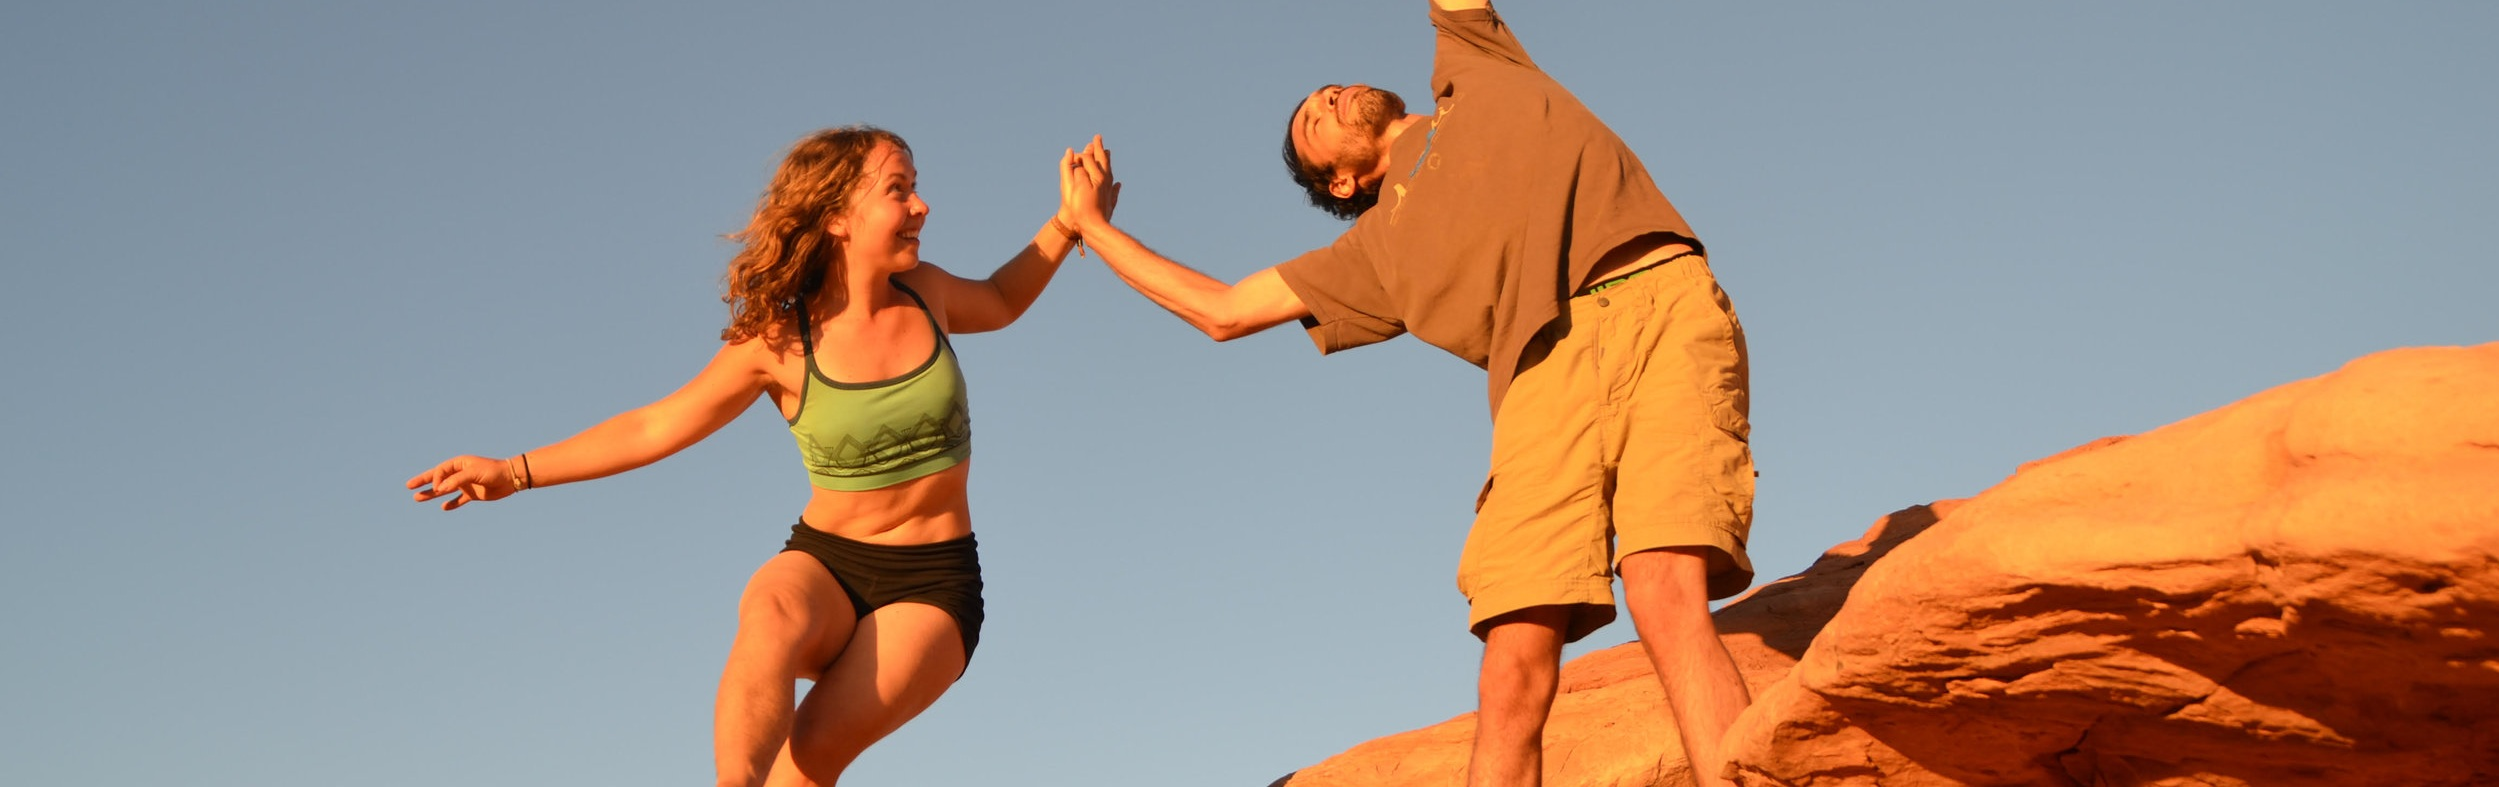 Moab Jam - Workshop and Contact Improvisation Jam in Moab, Utah